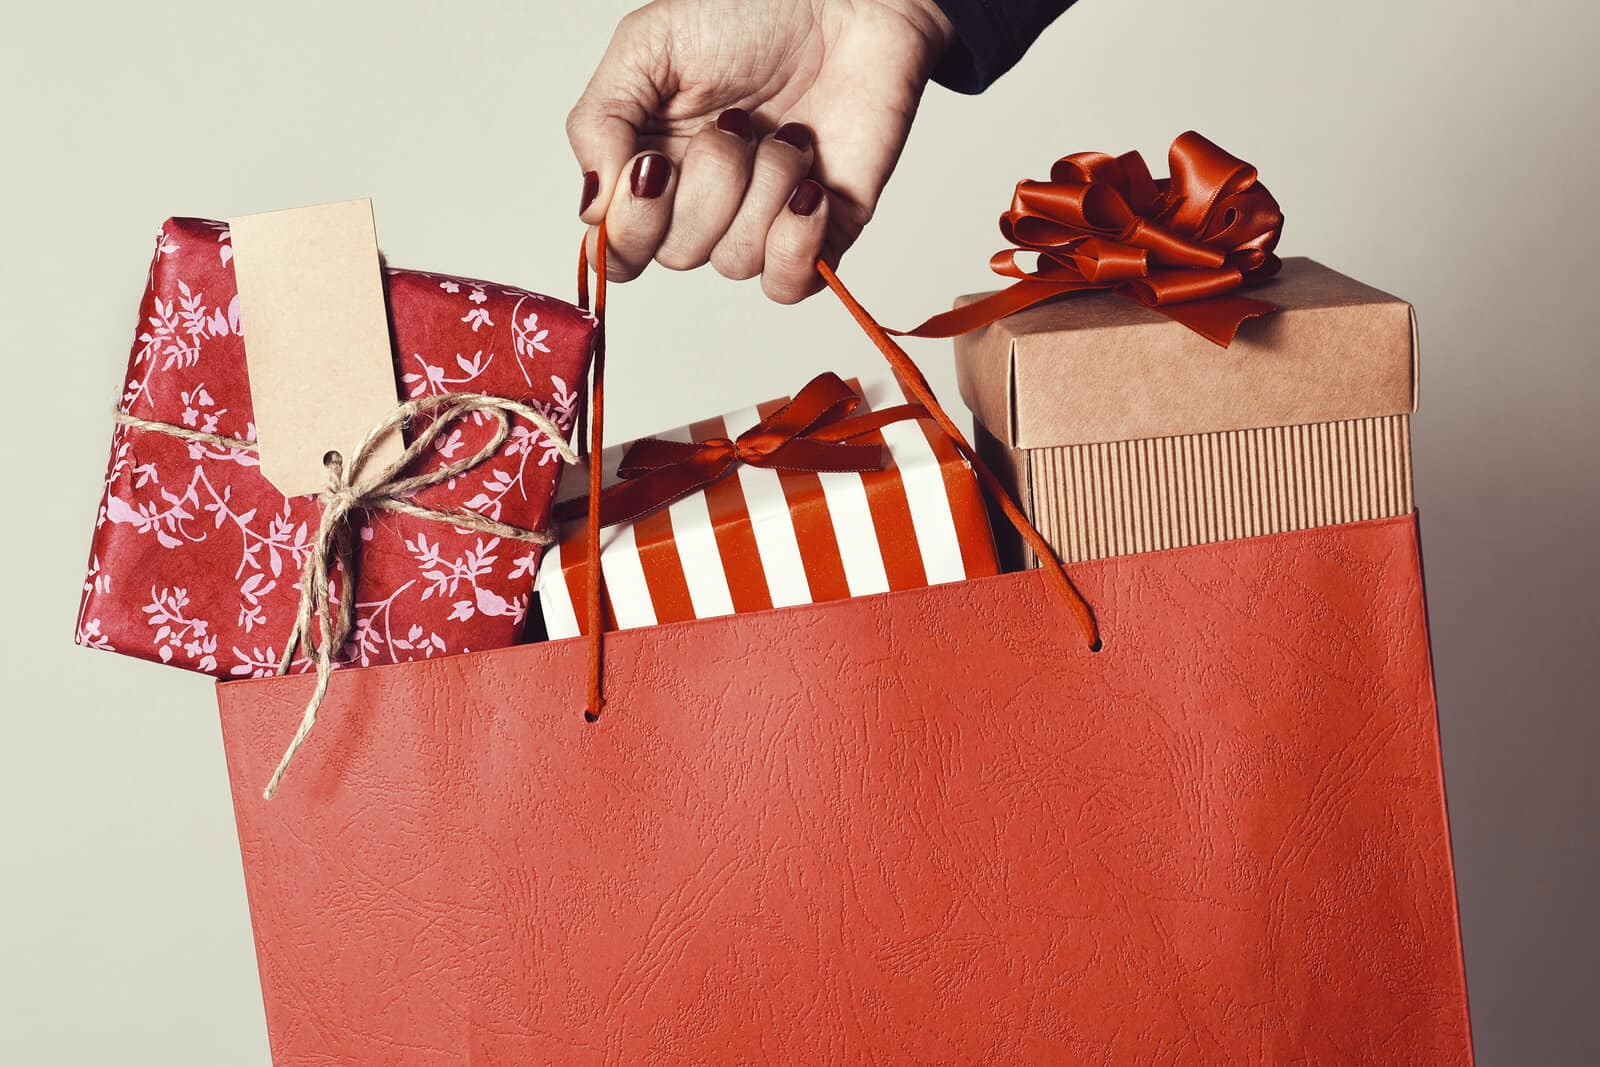 Top 10 Unique Gifts for Mom this Christmas